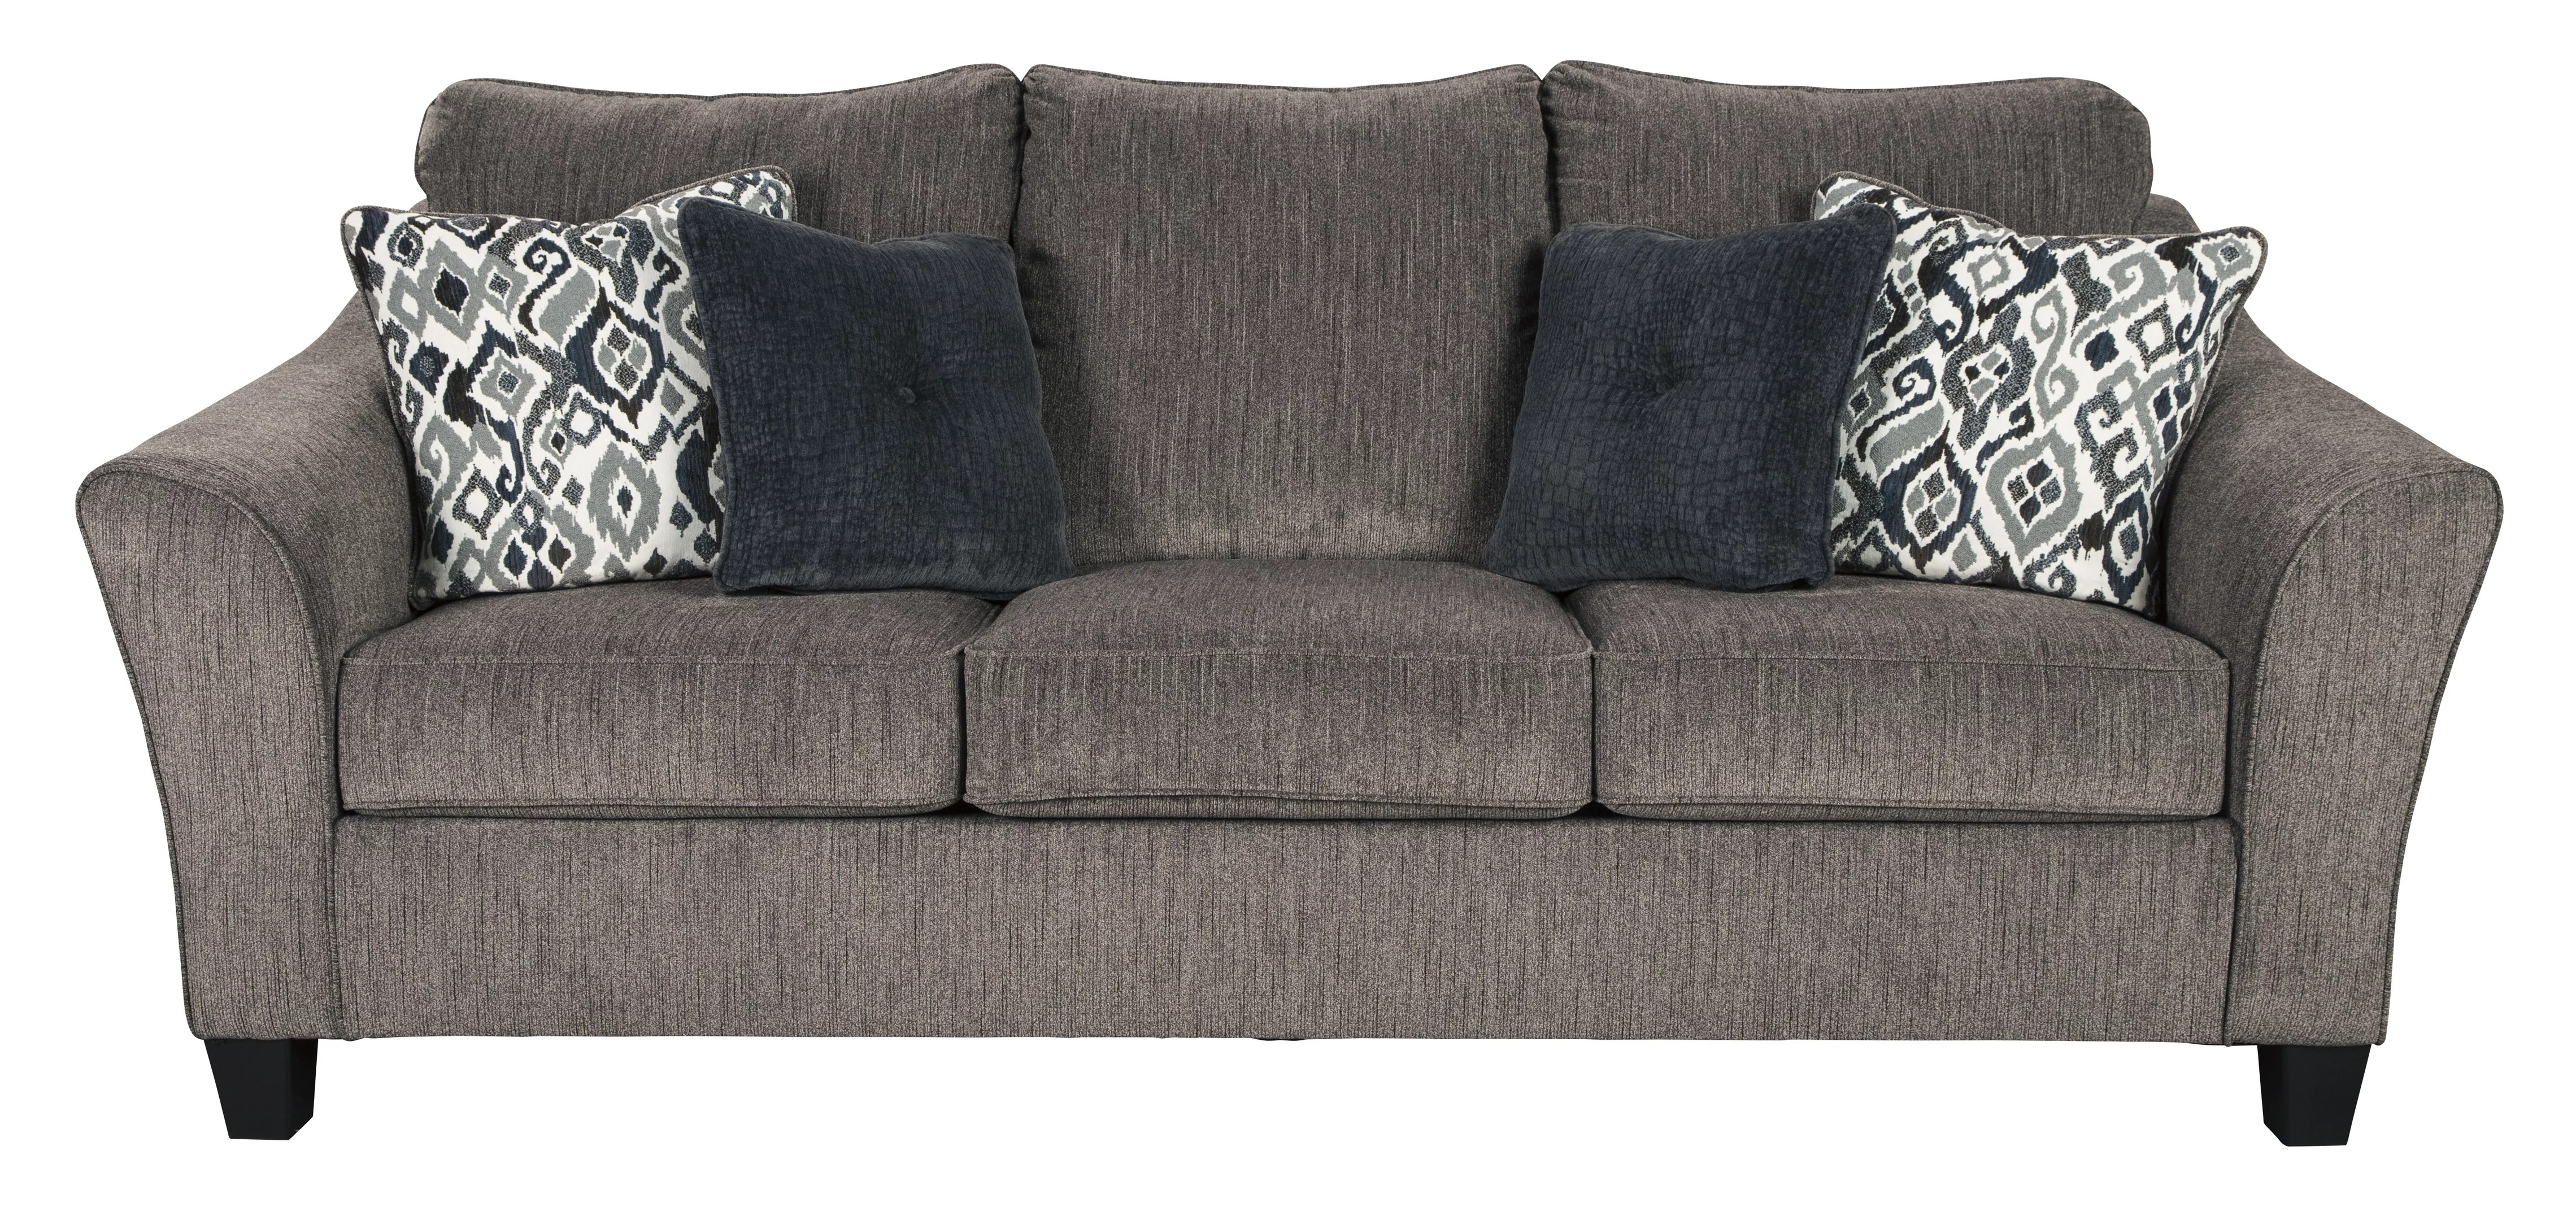 The Nemoli Sofa sets the scene for a modern space full of casual flair with its flared arms. Its textured chenille with solid microfiber upholstery provides a luxuriously soft feel that's inviting.